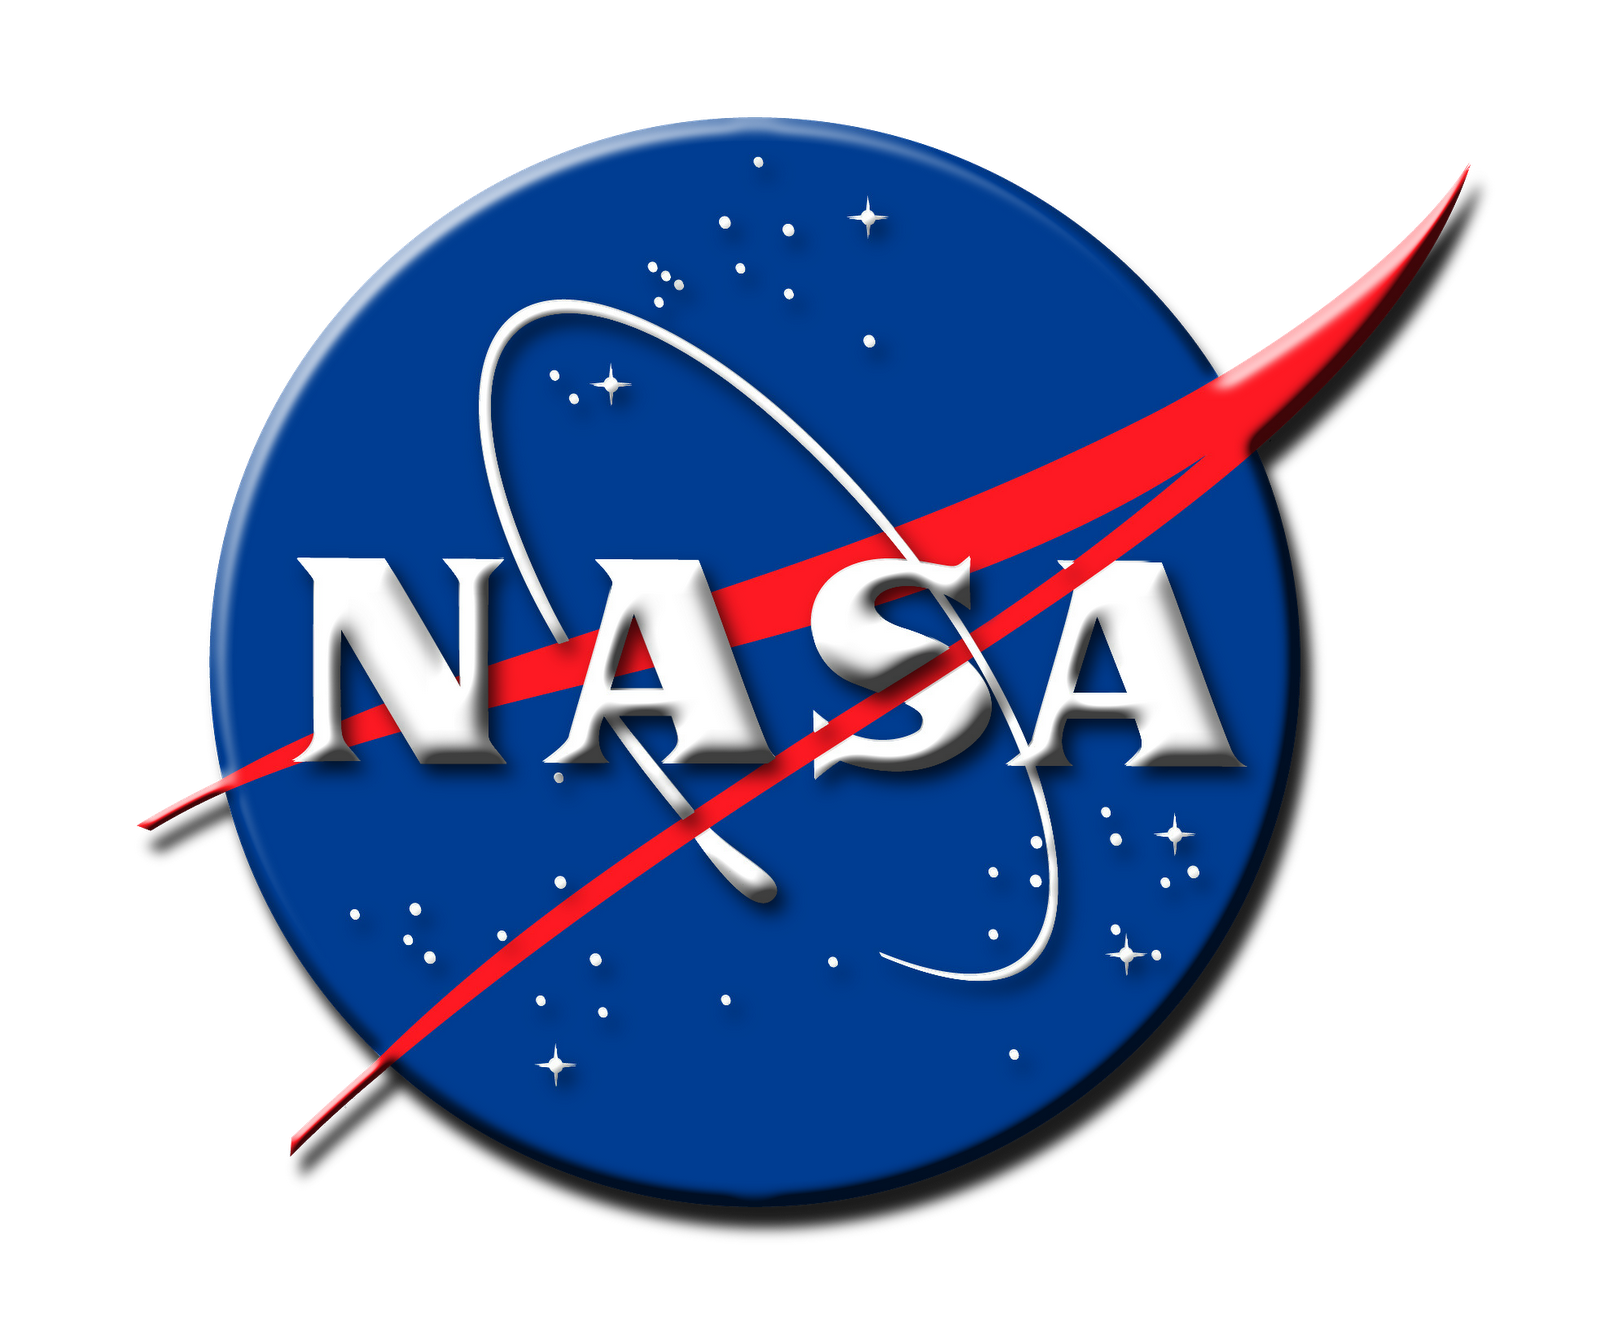 nasa usa logo - photo #14